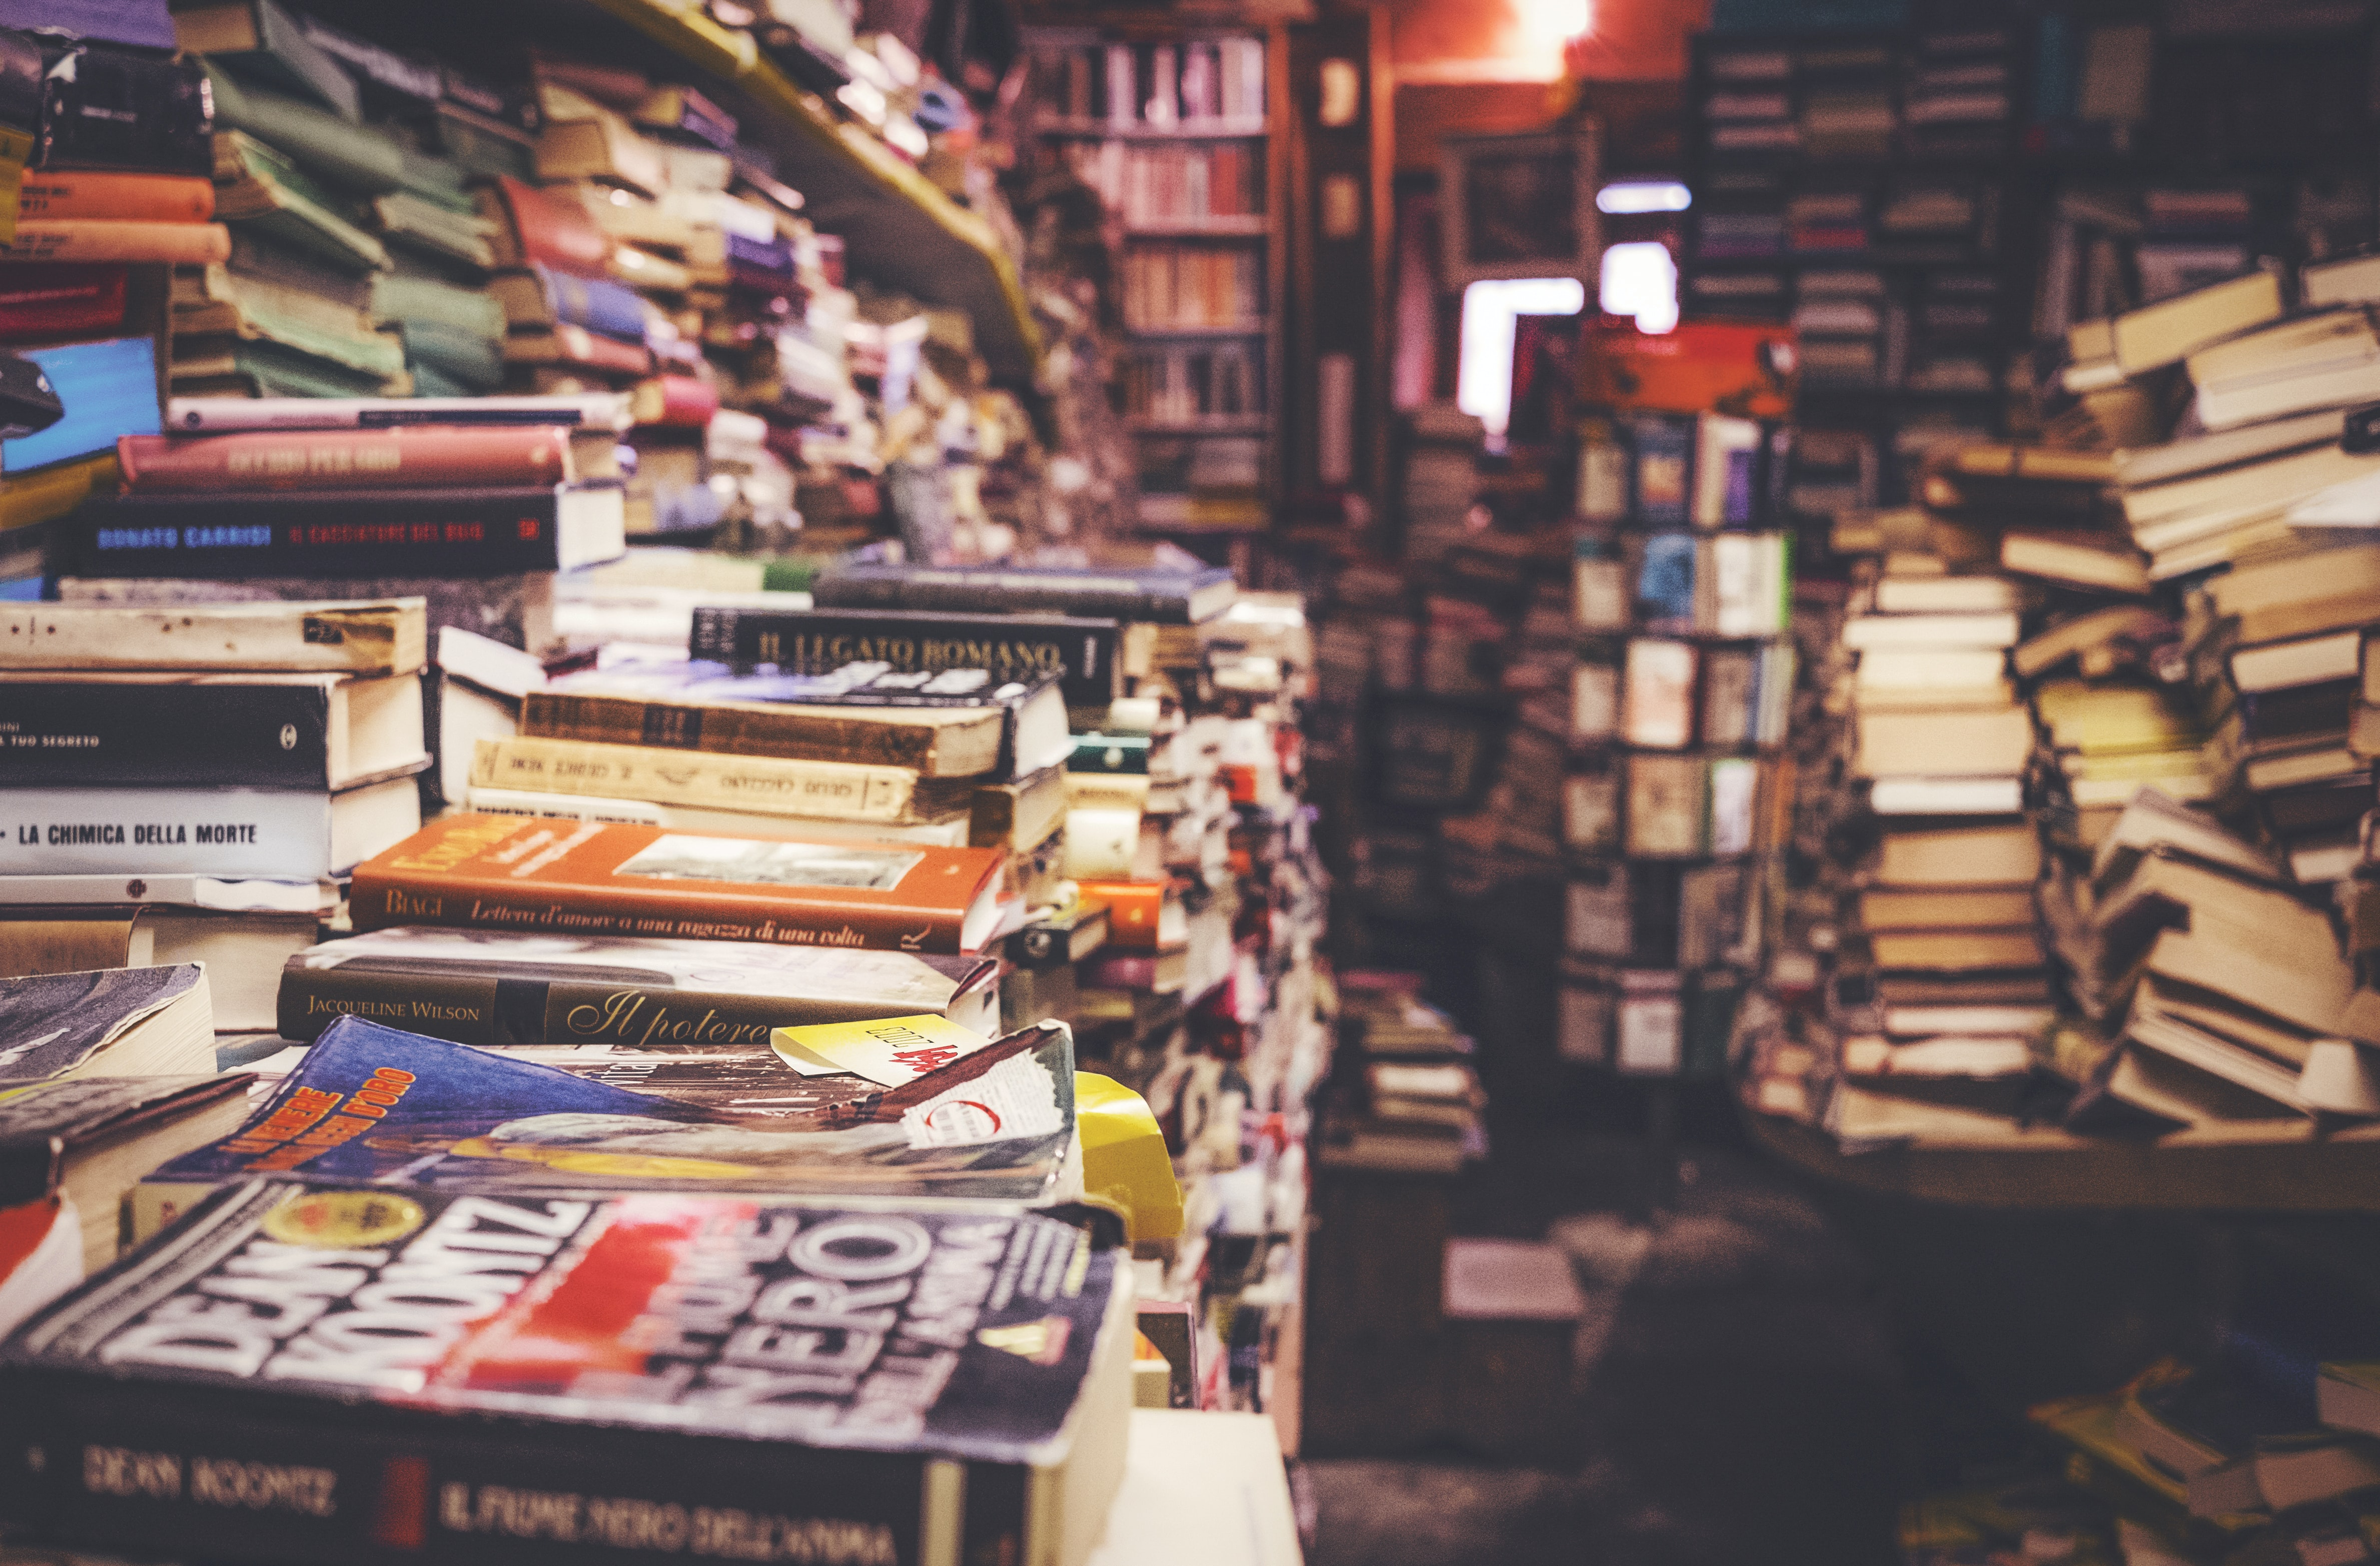 A room filled with huge stacks of books